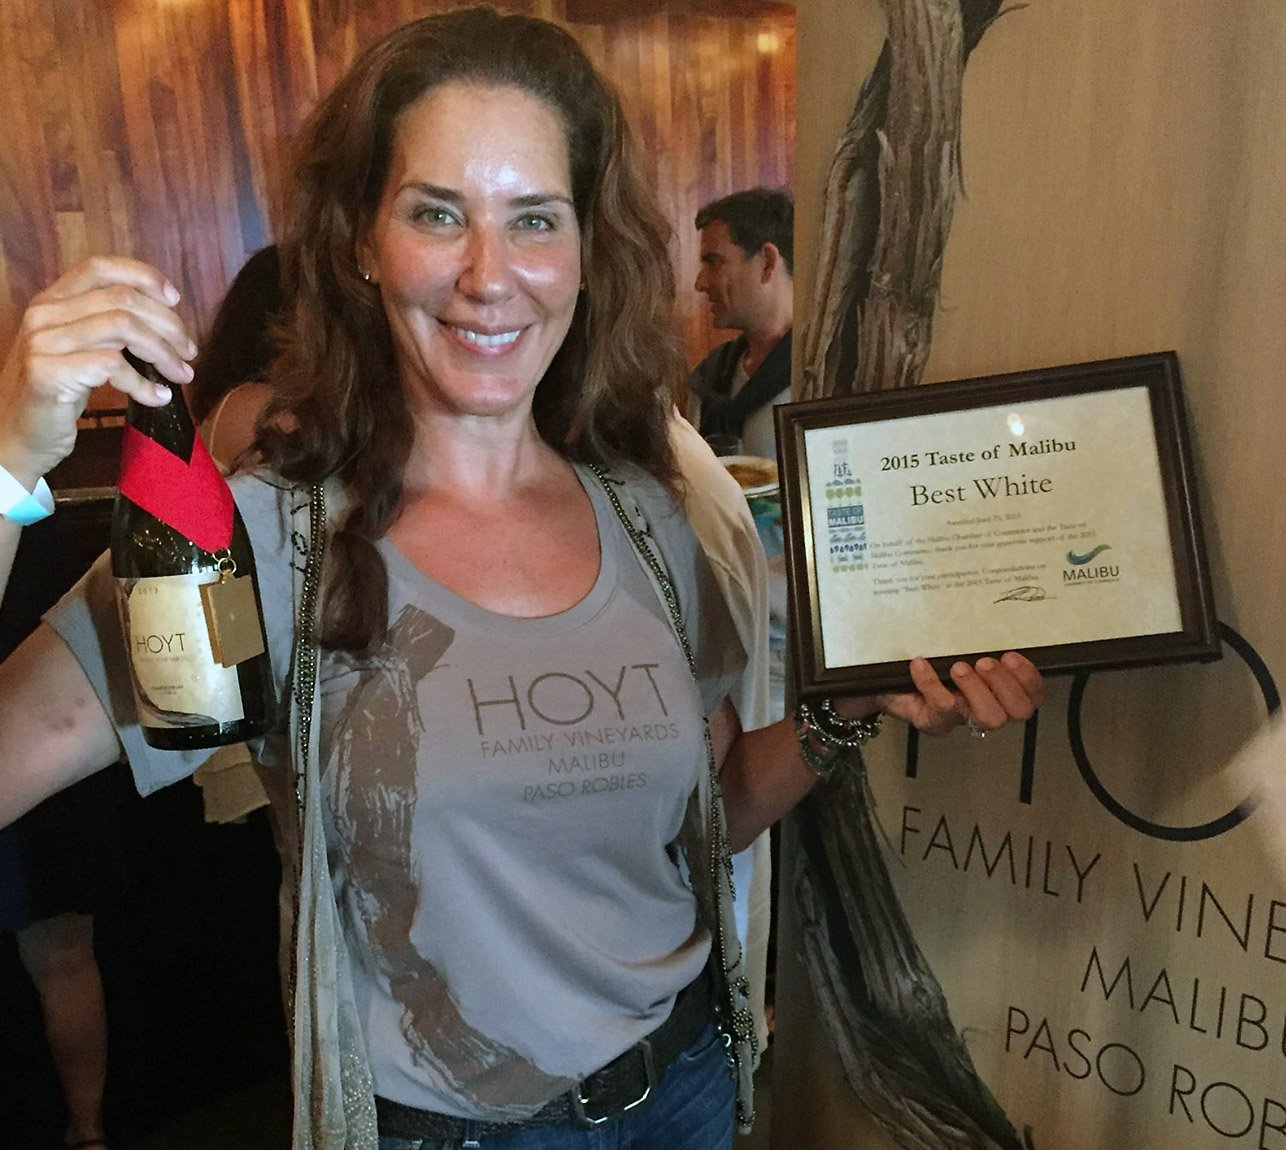 Hoyt Family Vineyard Carol Award